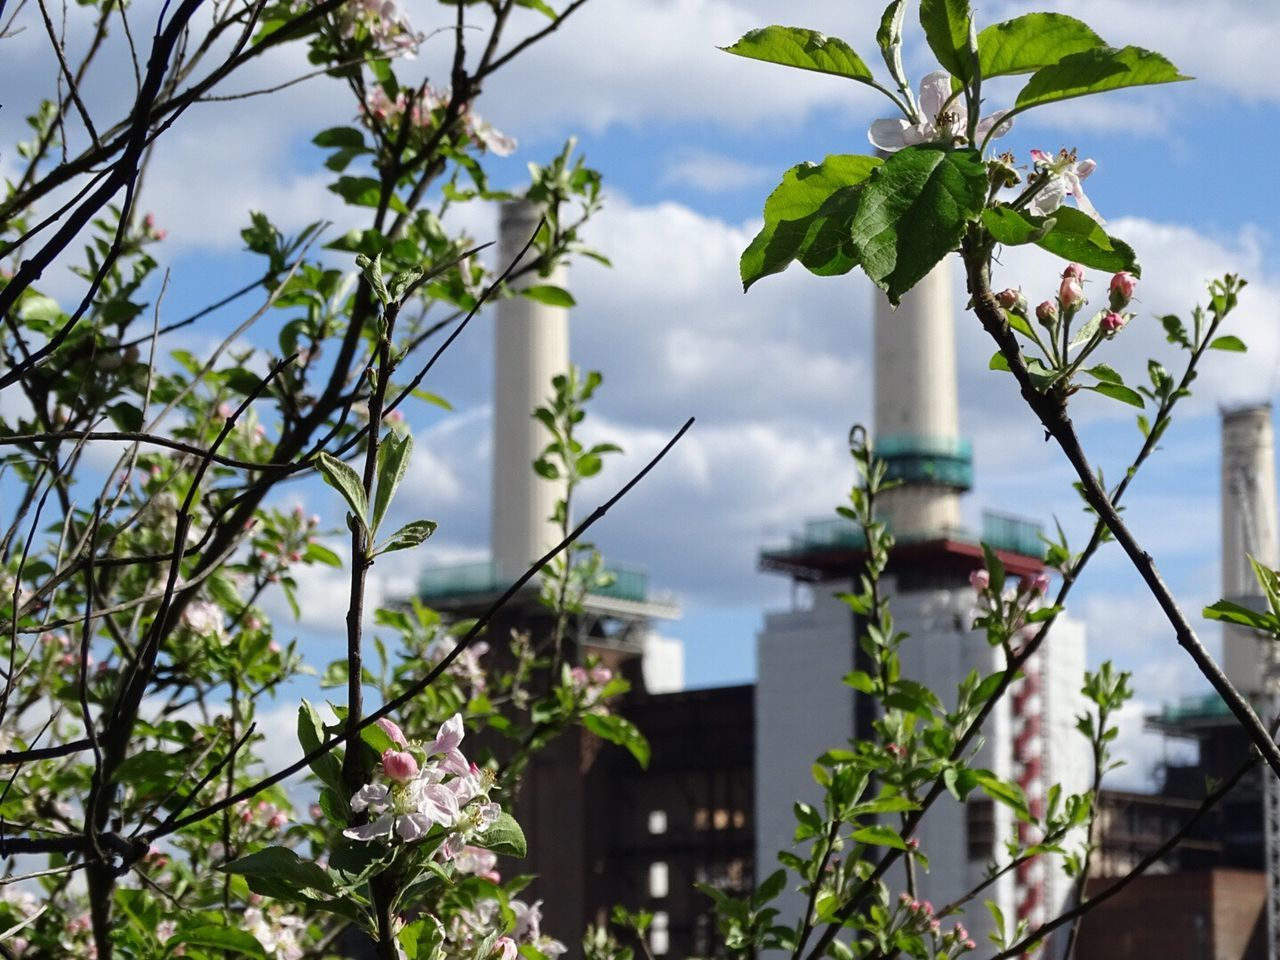 Battersea Power Station Batterseapowerstation Battersea Powerstation LONDON❤ Eyeemphoto